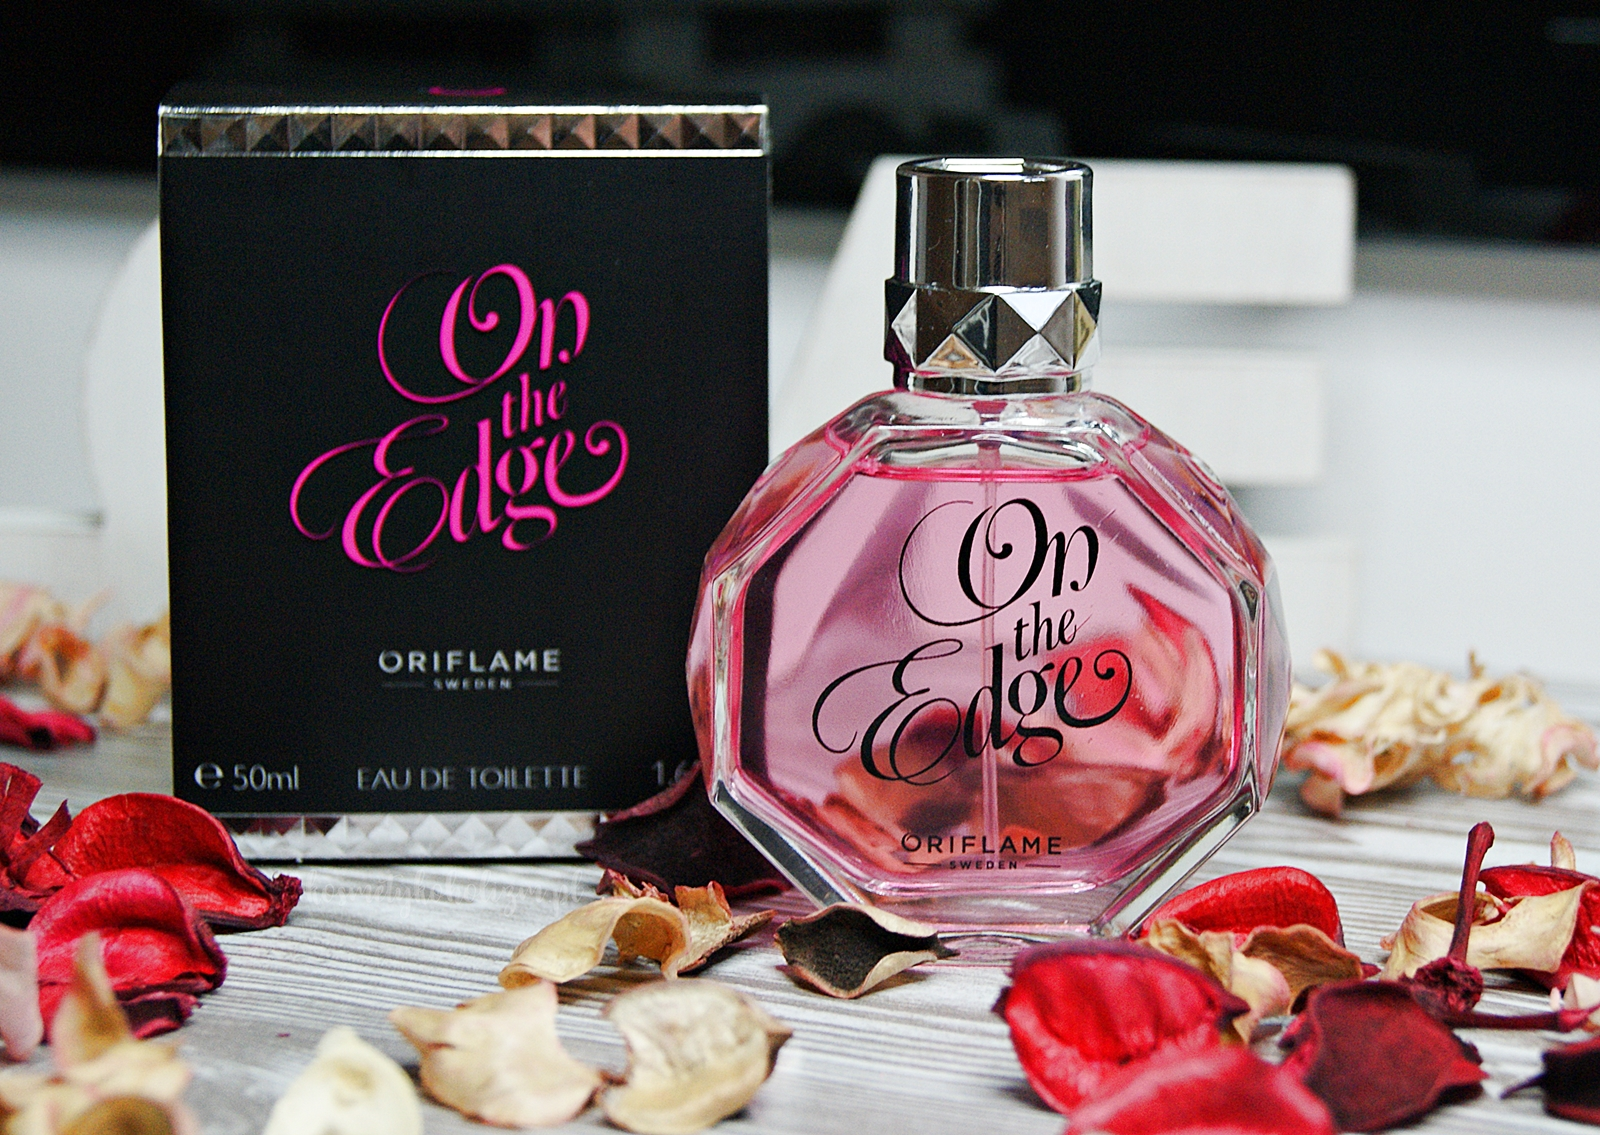 ORIFLAME ON THE EDGE | PERFUMY O ZAPACHU WATY CUKROWEJ